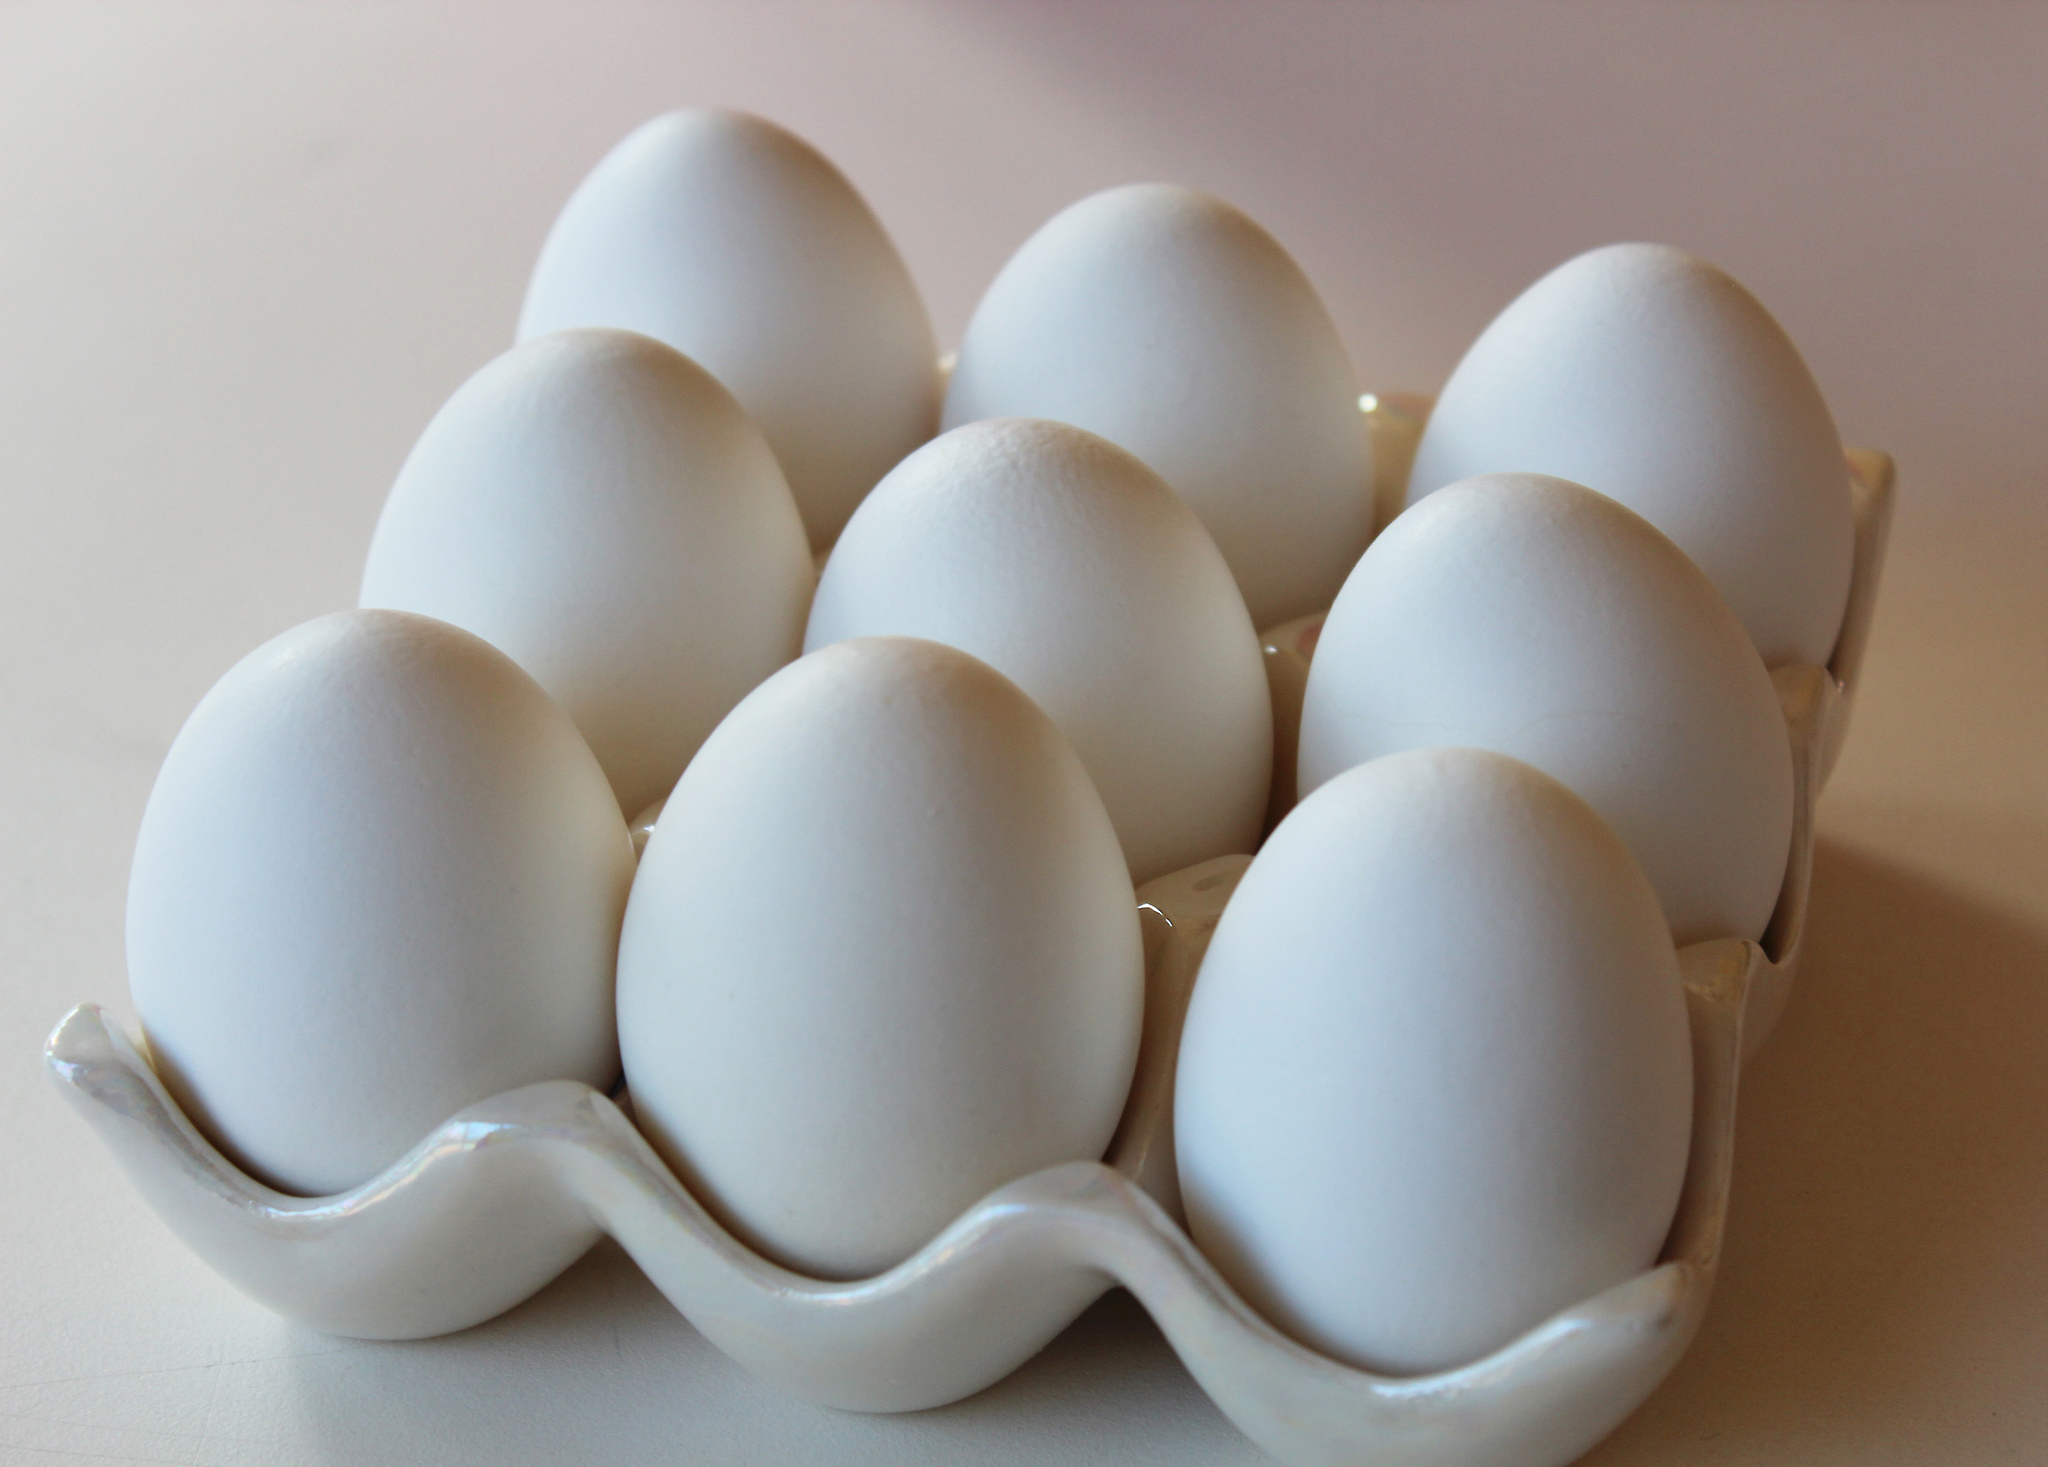 hard-cooked eggs -- There are many ways to hard-cook eggs.